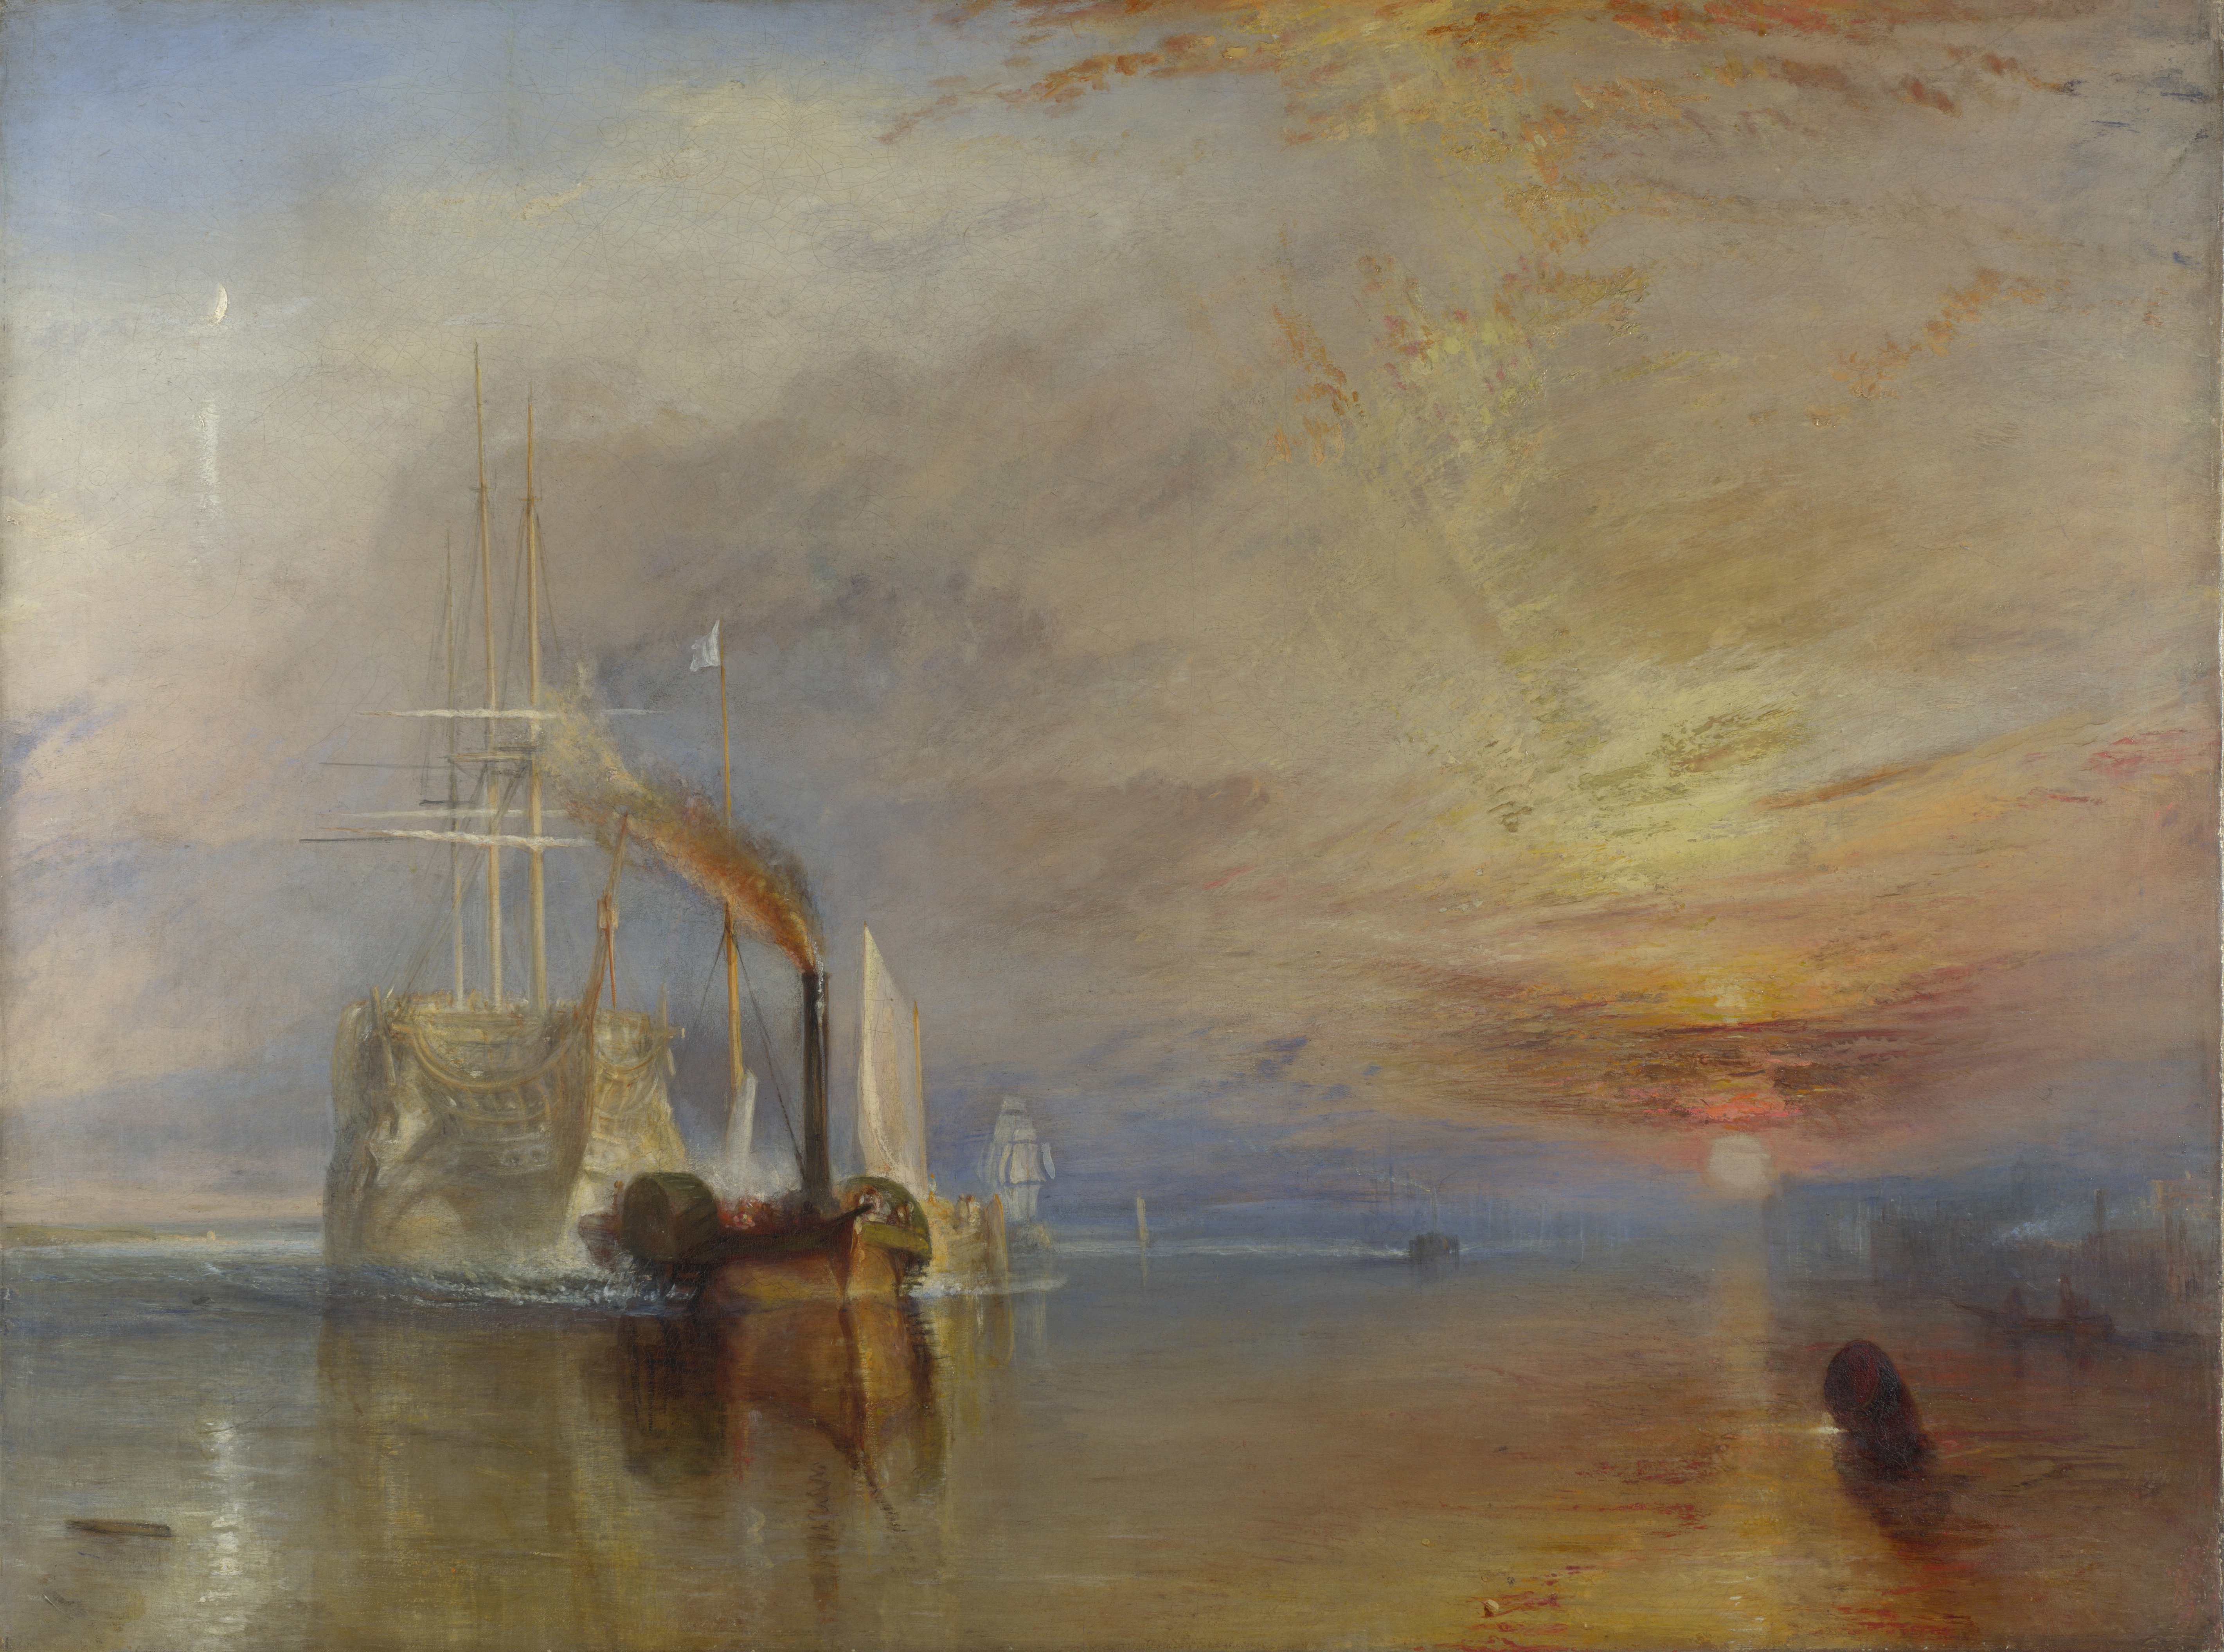 https://upload.wikimedia.org/wikipedia/commons/3/30/The_Fighting_Temeraire,_JMW_Turner,_National_Gallery.jpg